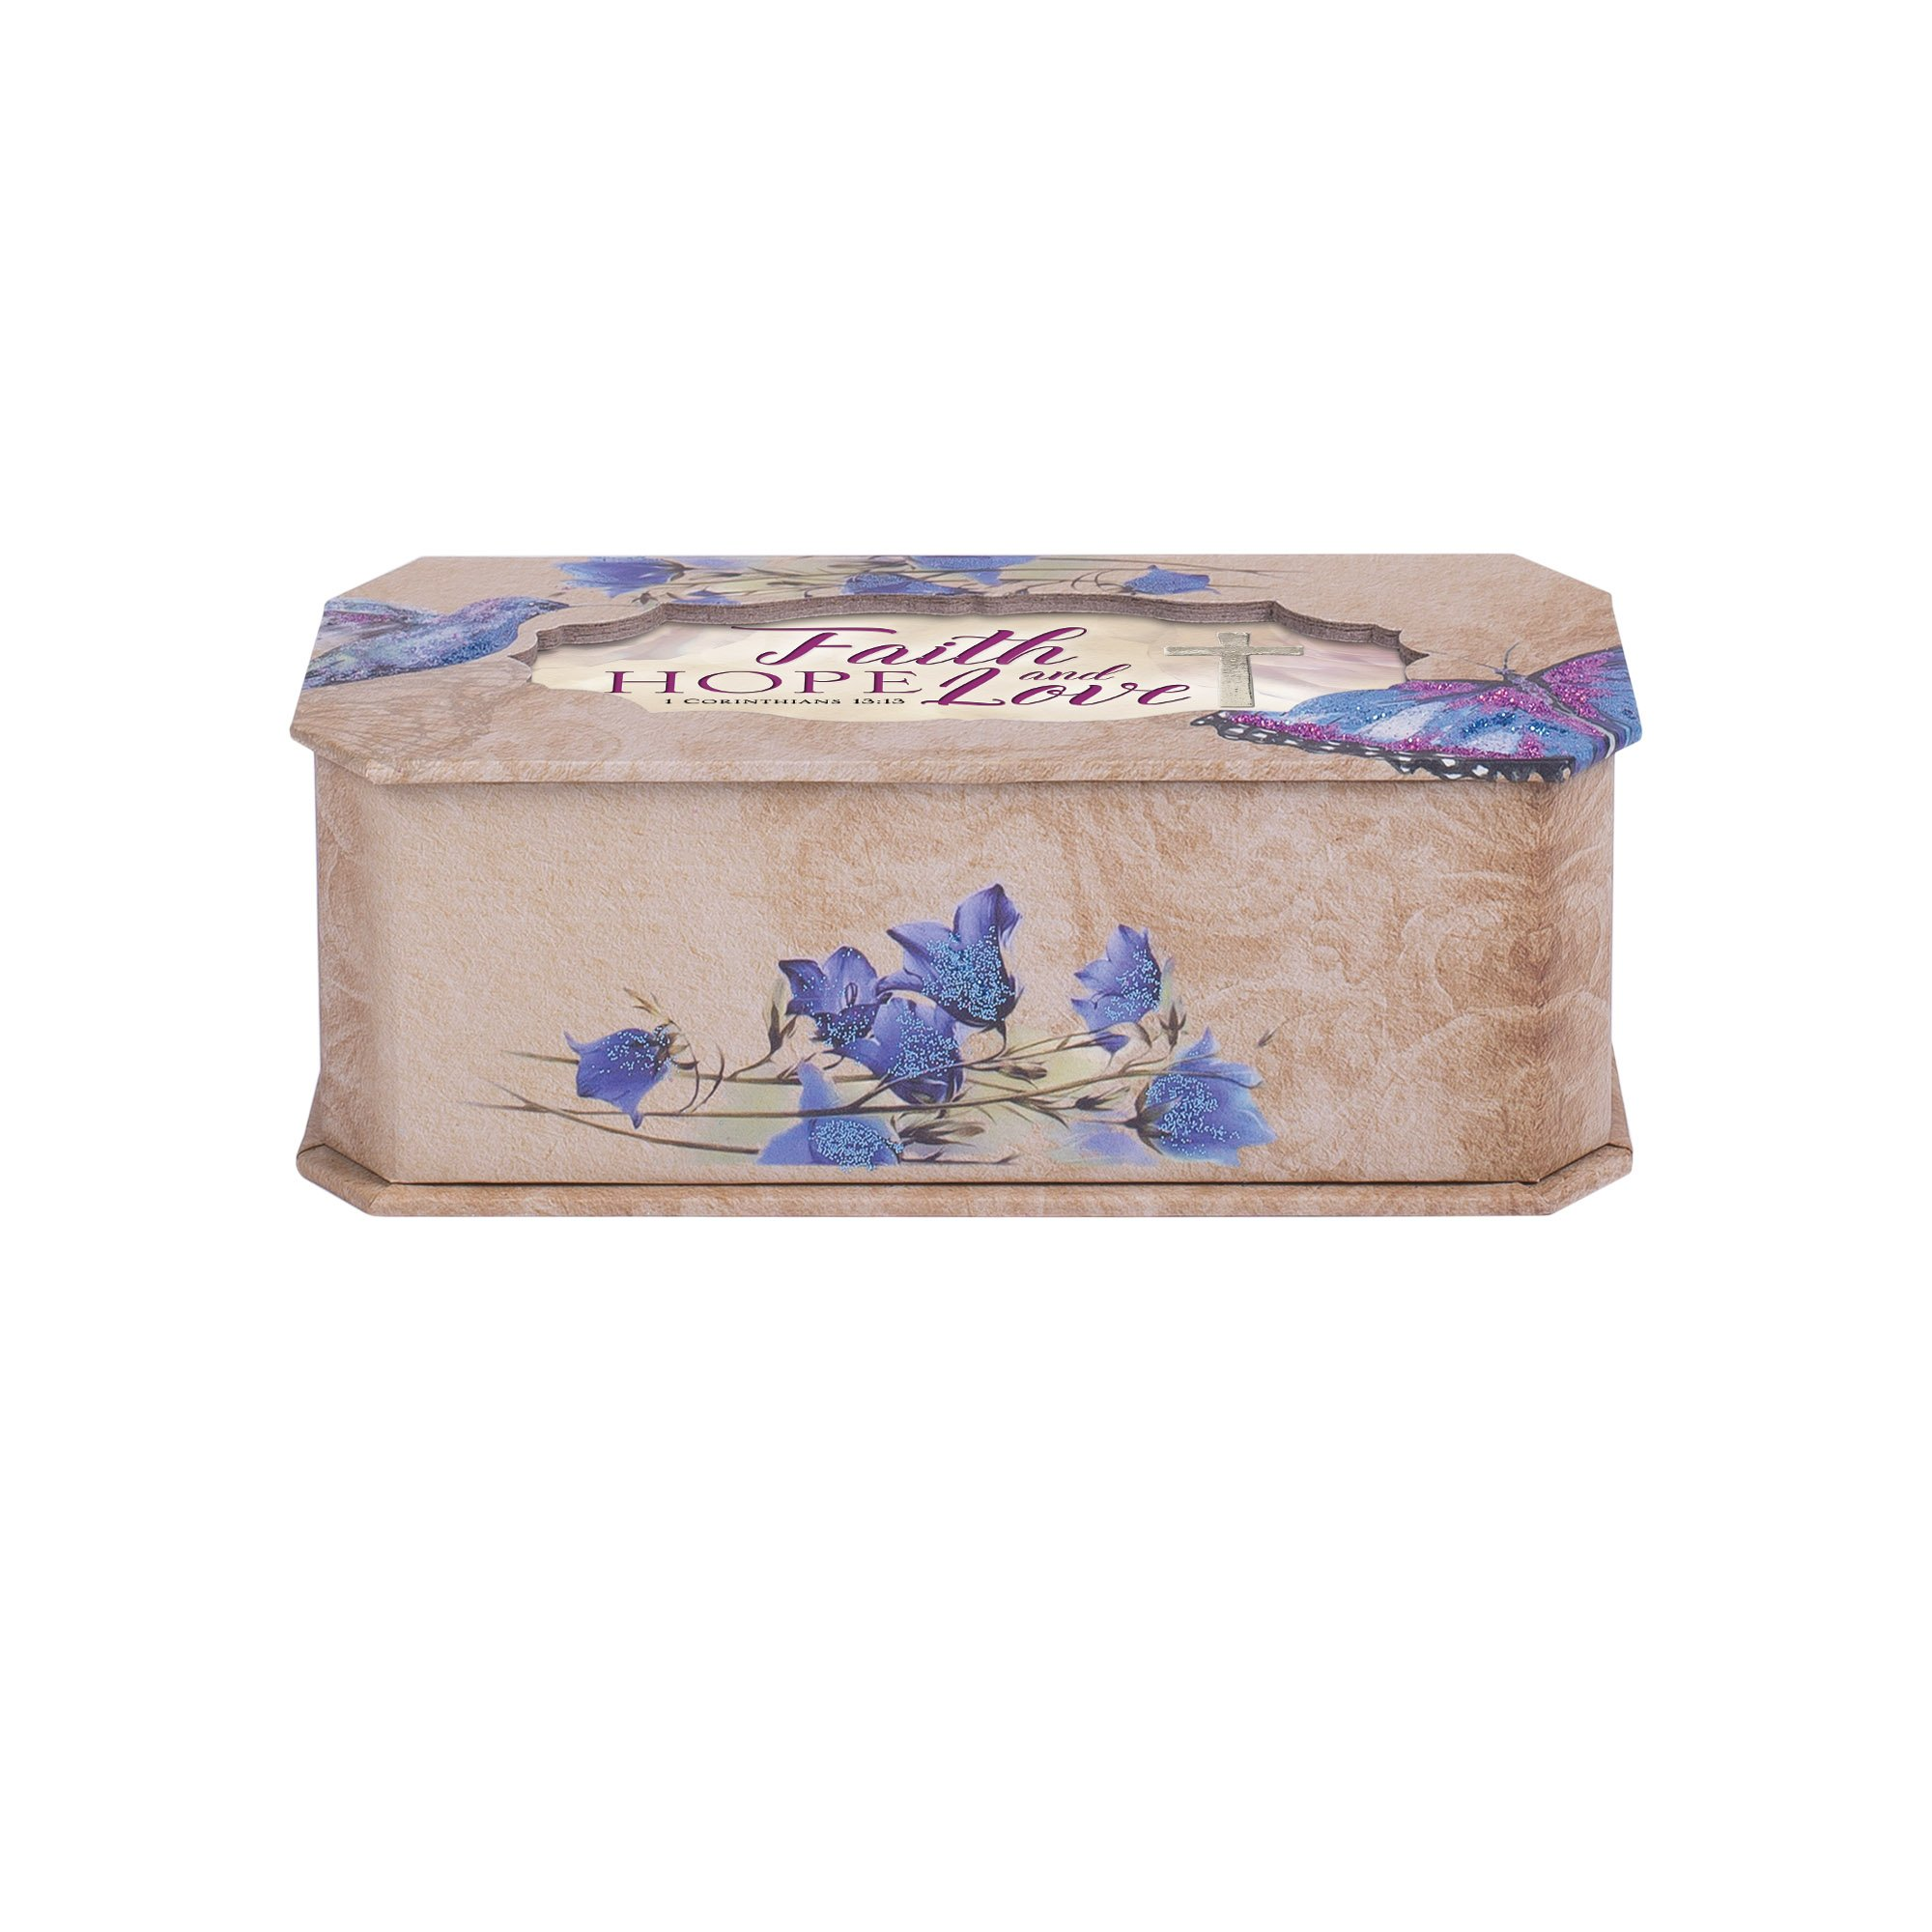 Cottage Garden Faith Hope And Love Butterfly and Bird Glitter Musical Box Plays Tune How Great Thou Art by Cottage Garden (Image #4)